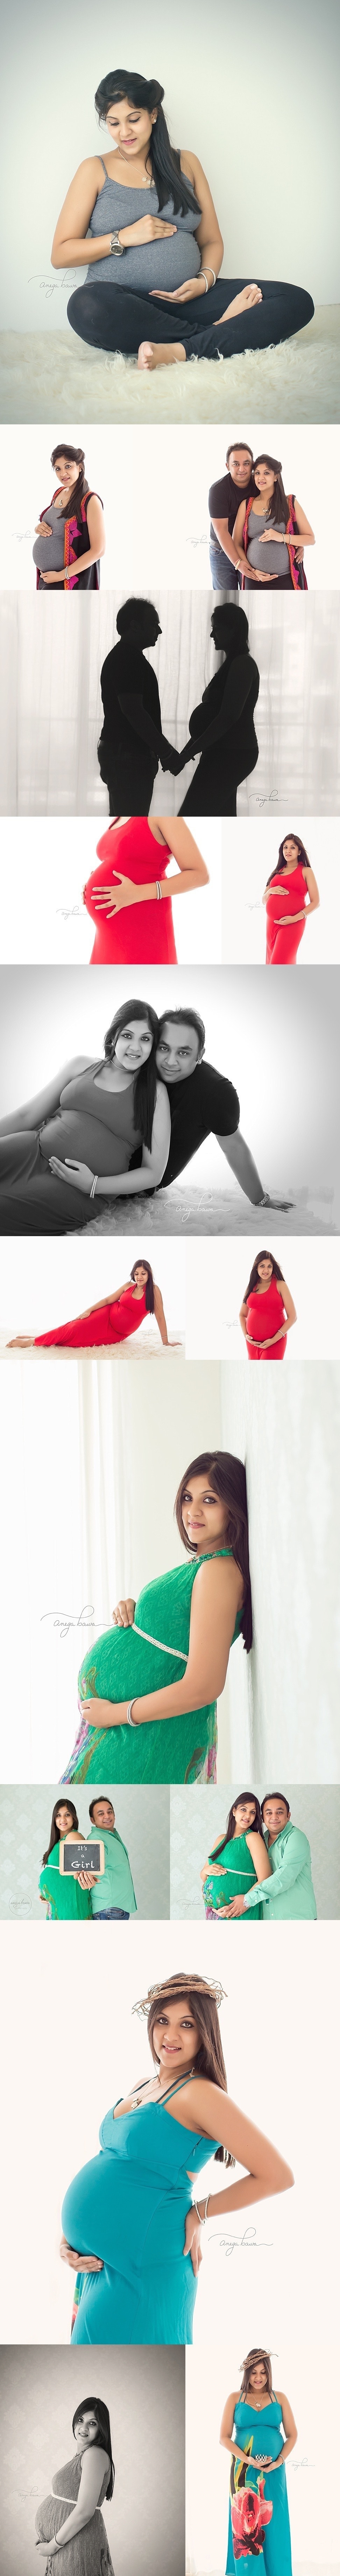 pregnancy_photographer_in_delhi - anega bawa